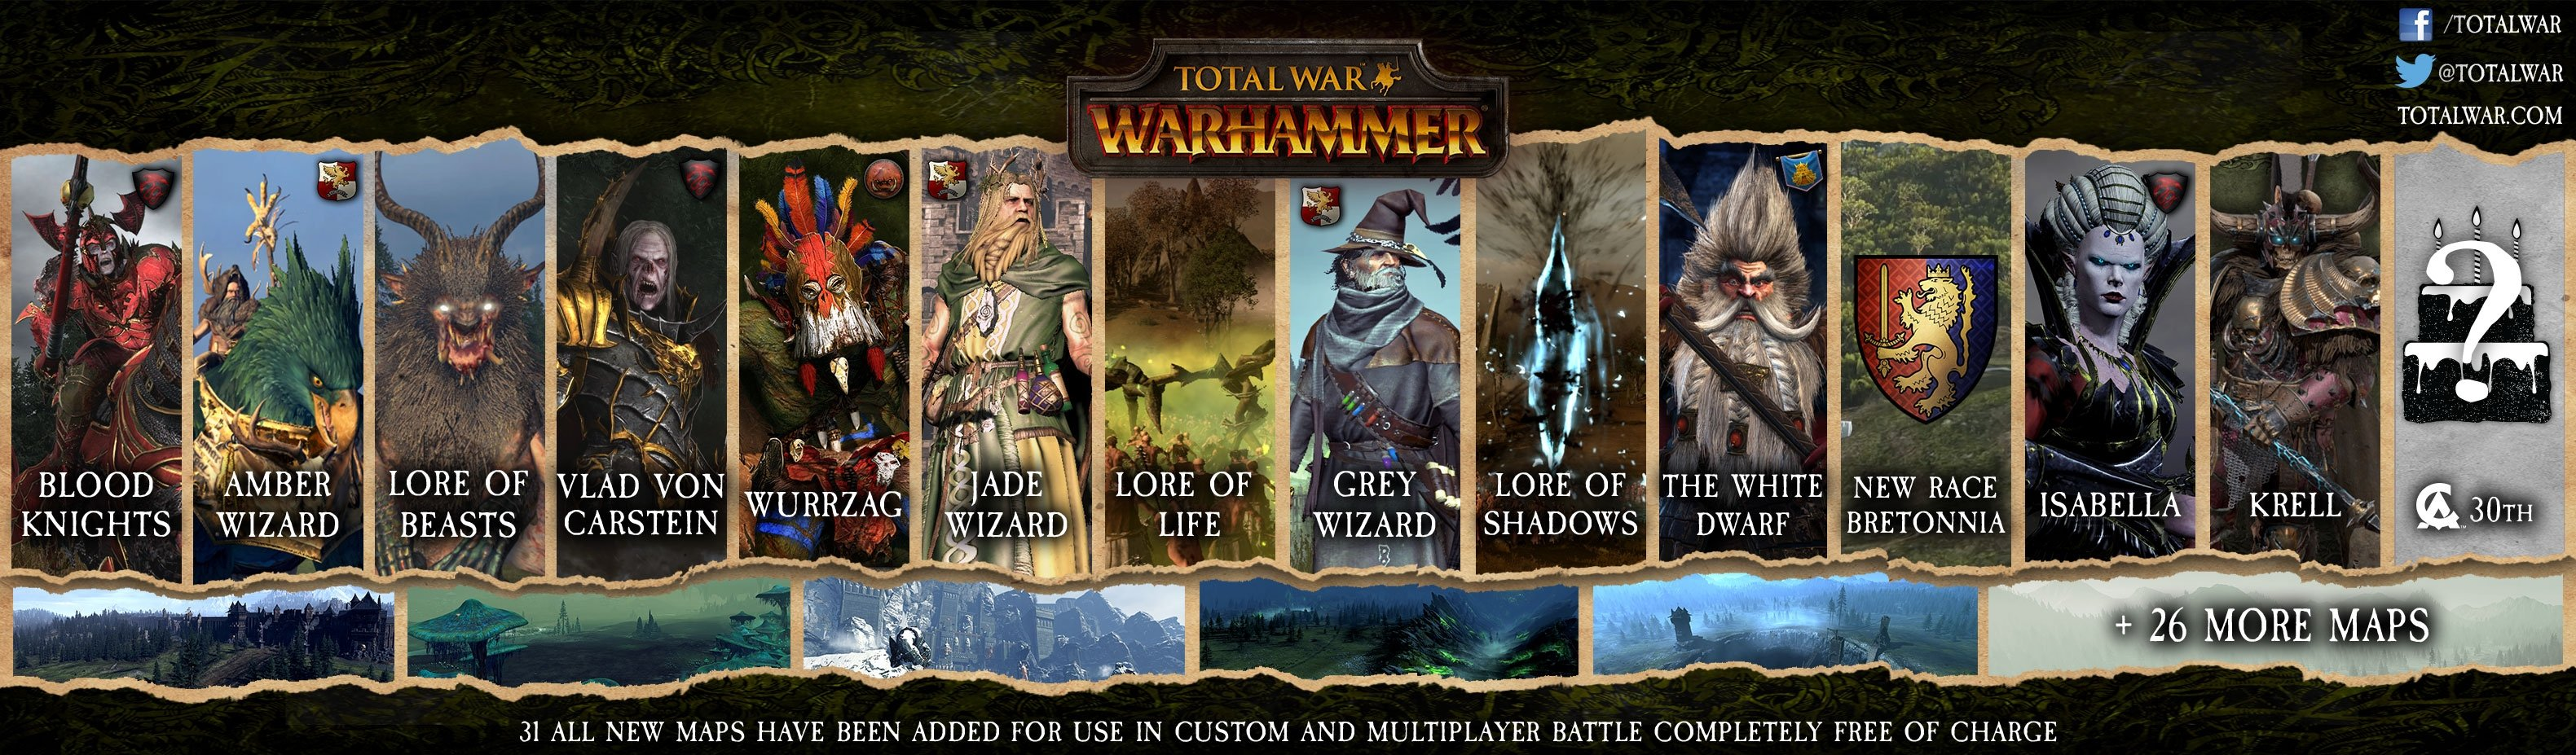 30 new Regiments of Renown for WARHAMMER — Total War Forums